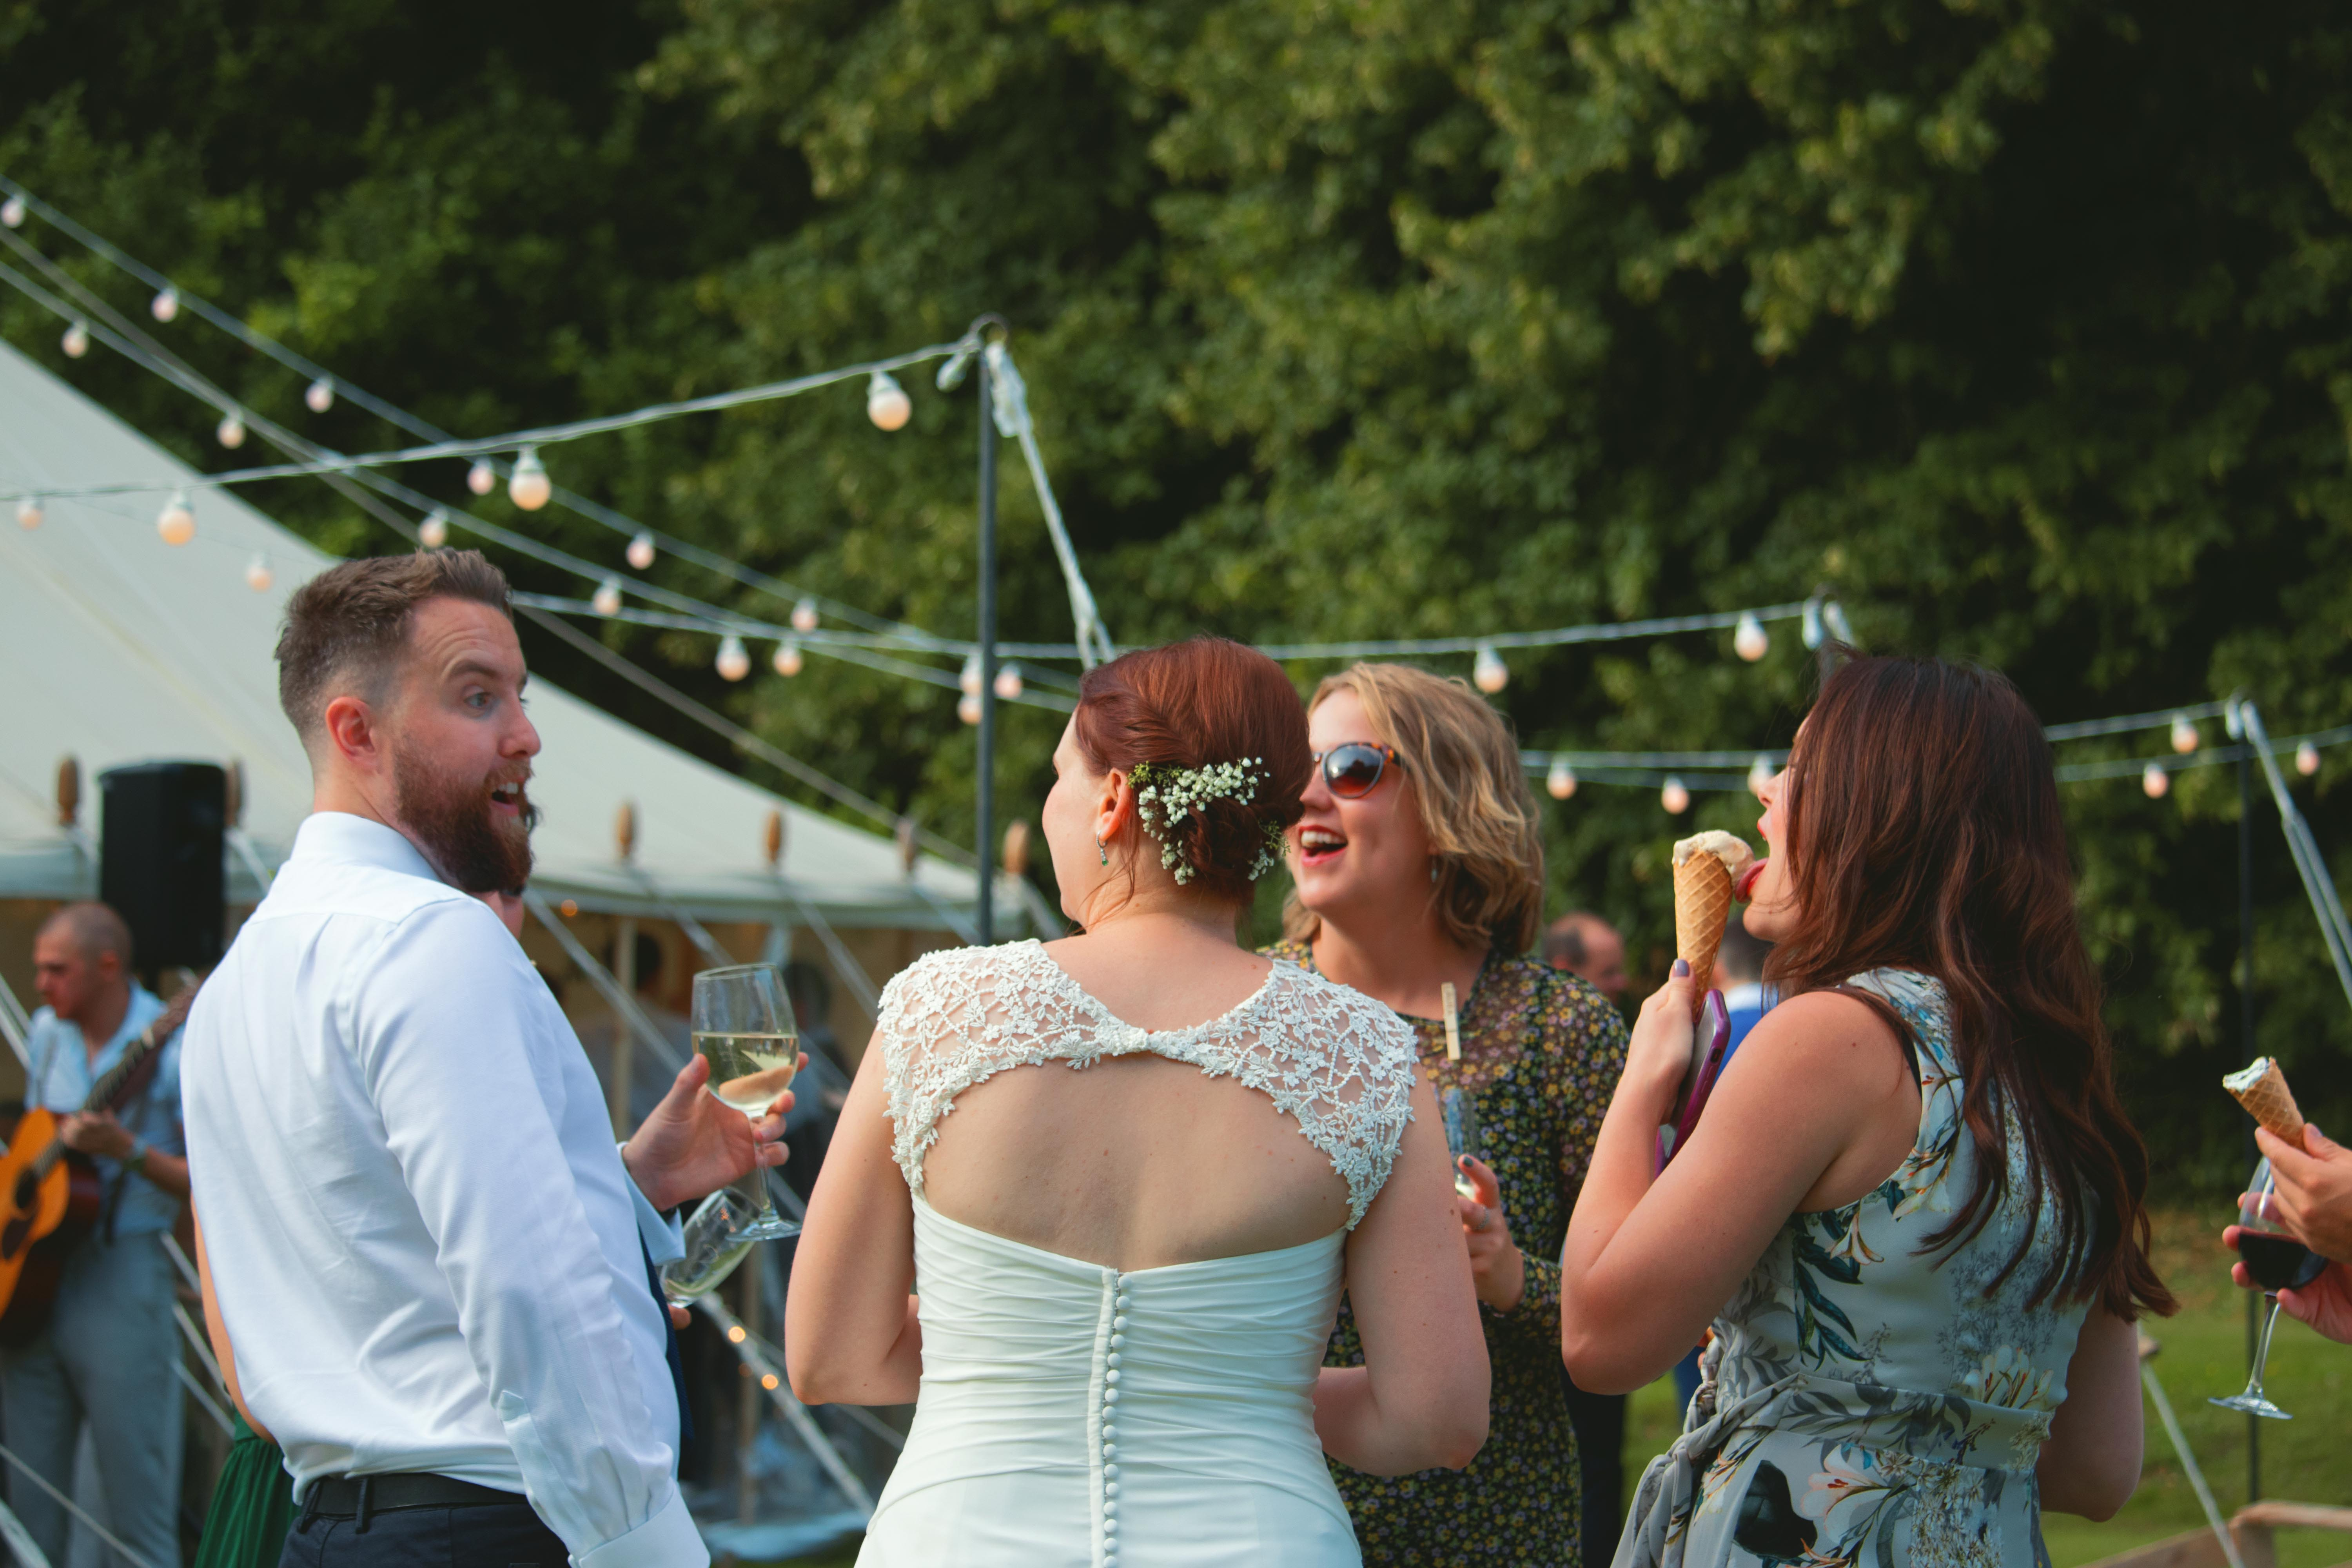 Laugher with Wedding Guests